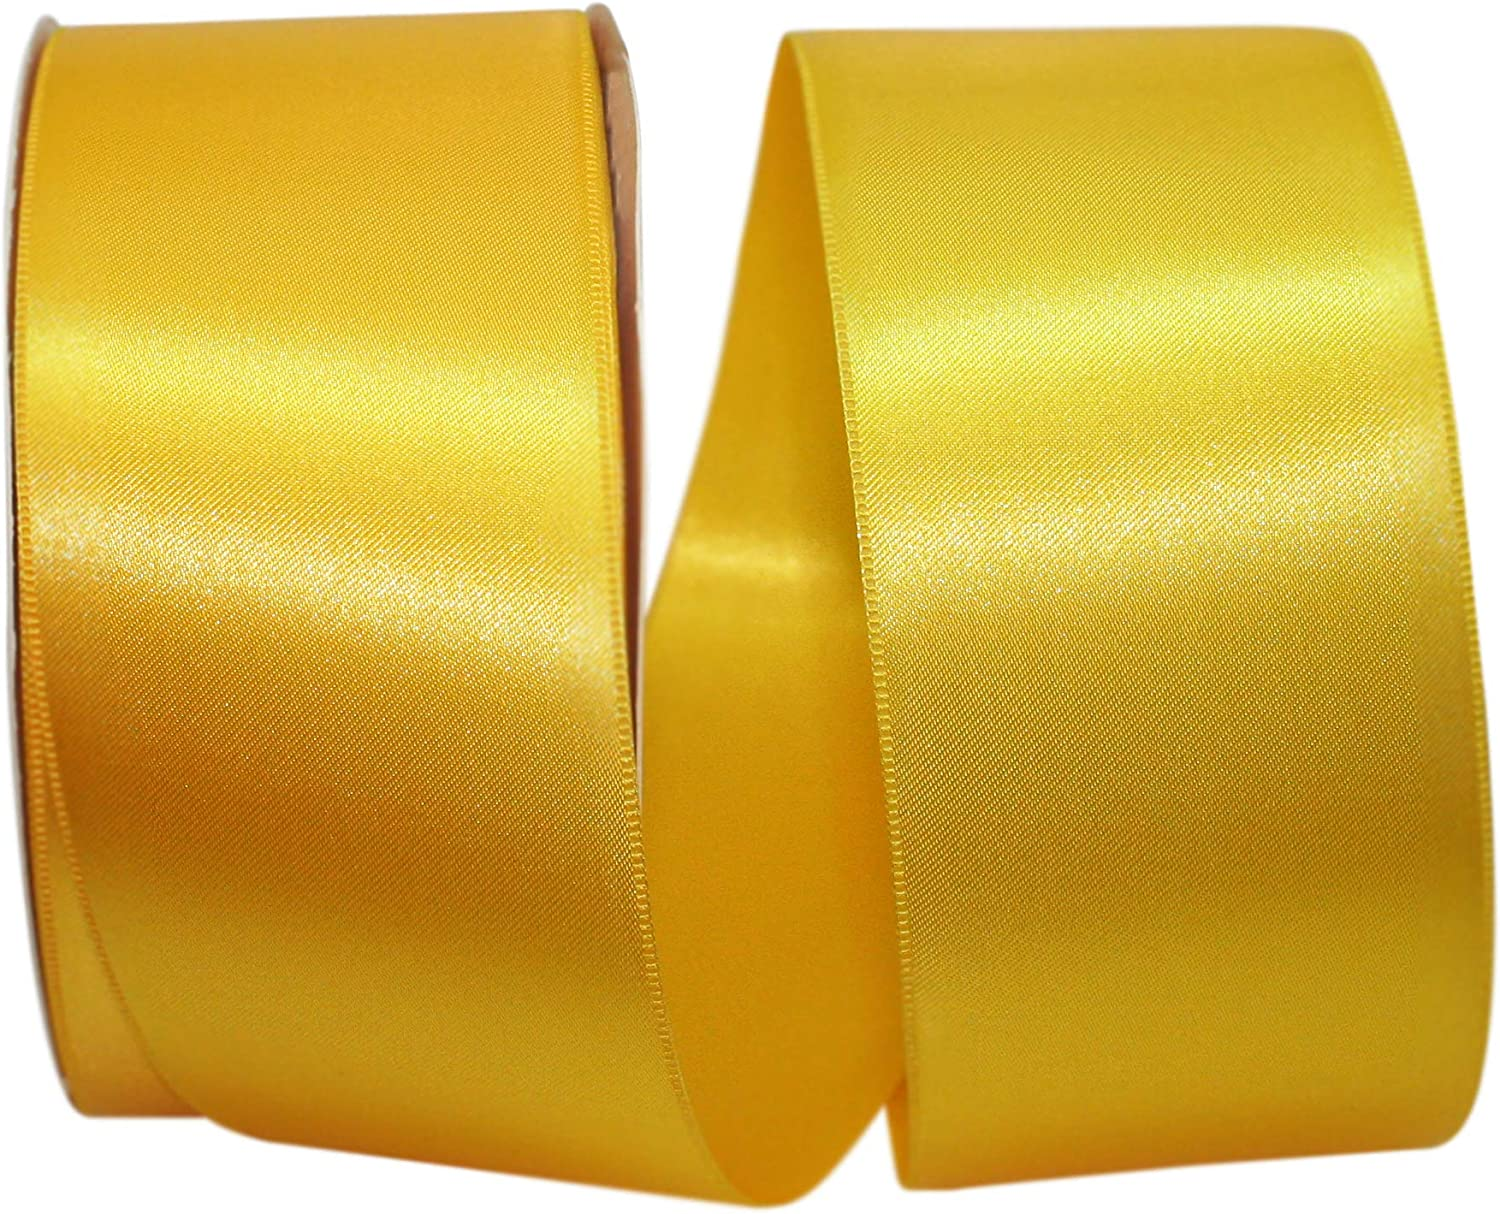 1-1//2 Inch X 100 Yards Apple Green Reliant Ribbon 5000-042-09C Double Face Satin Allure Dfs Ribbon